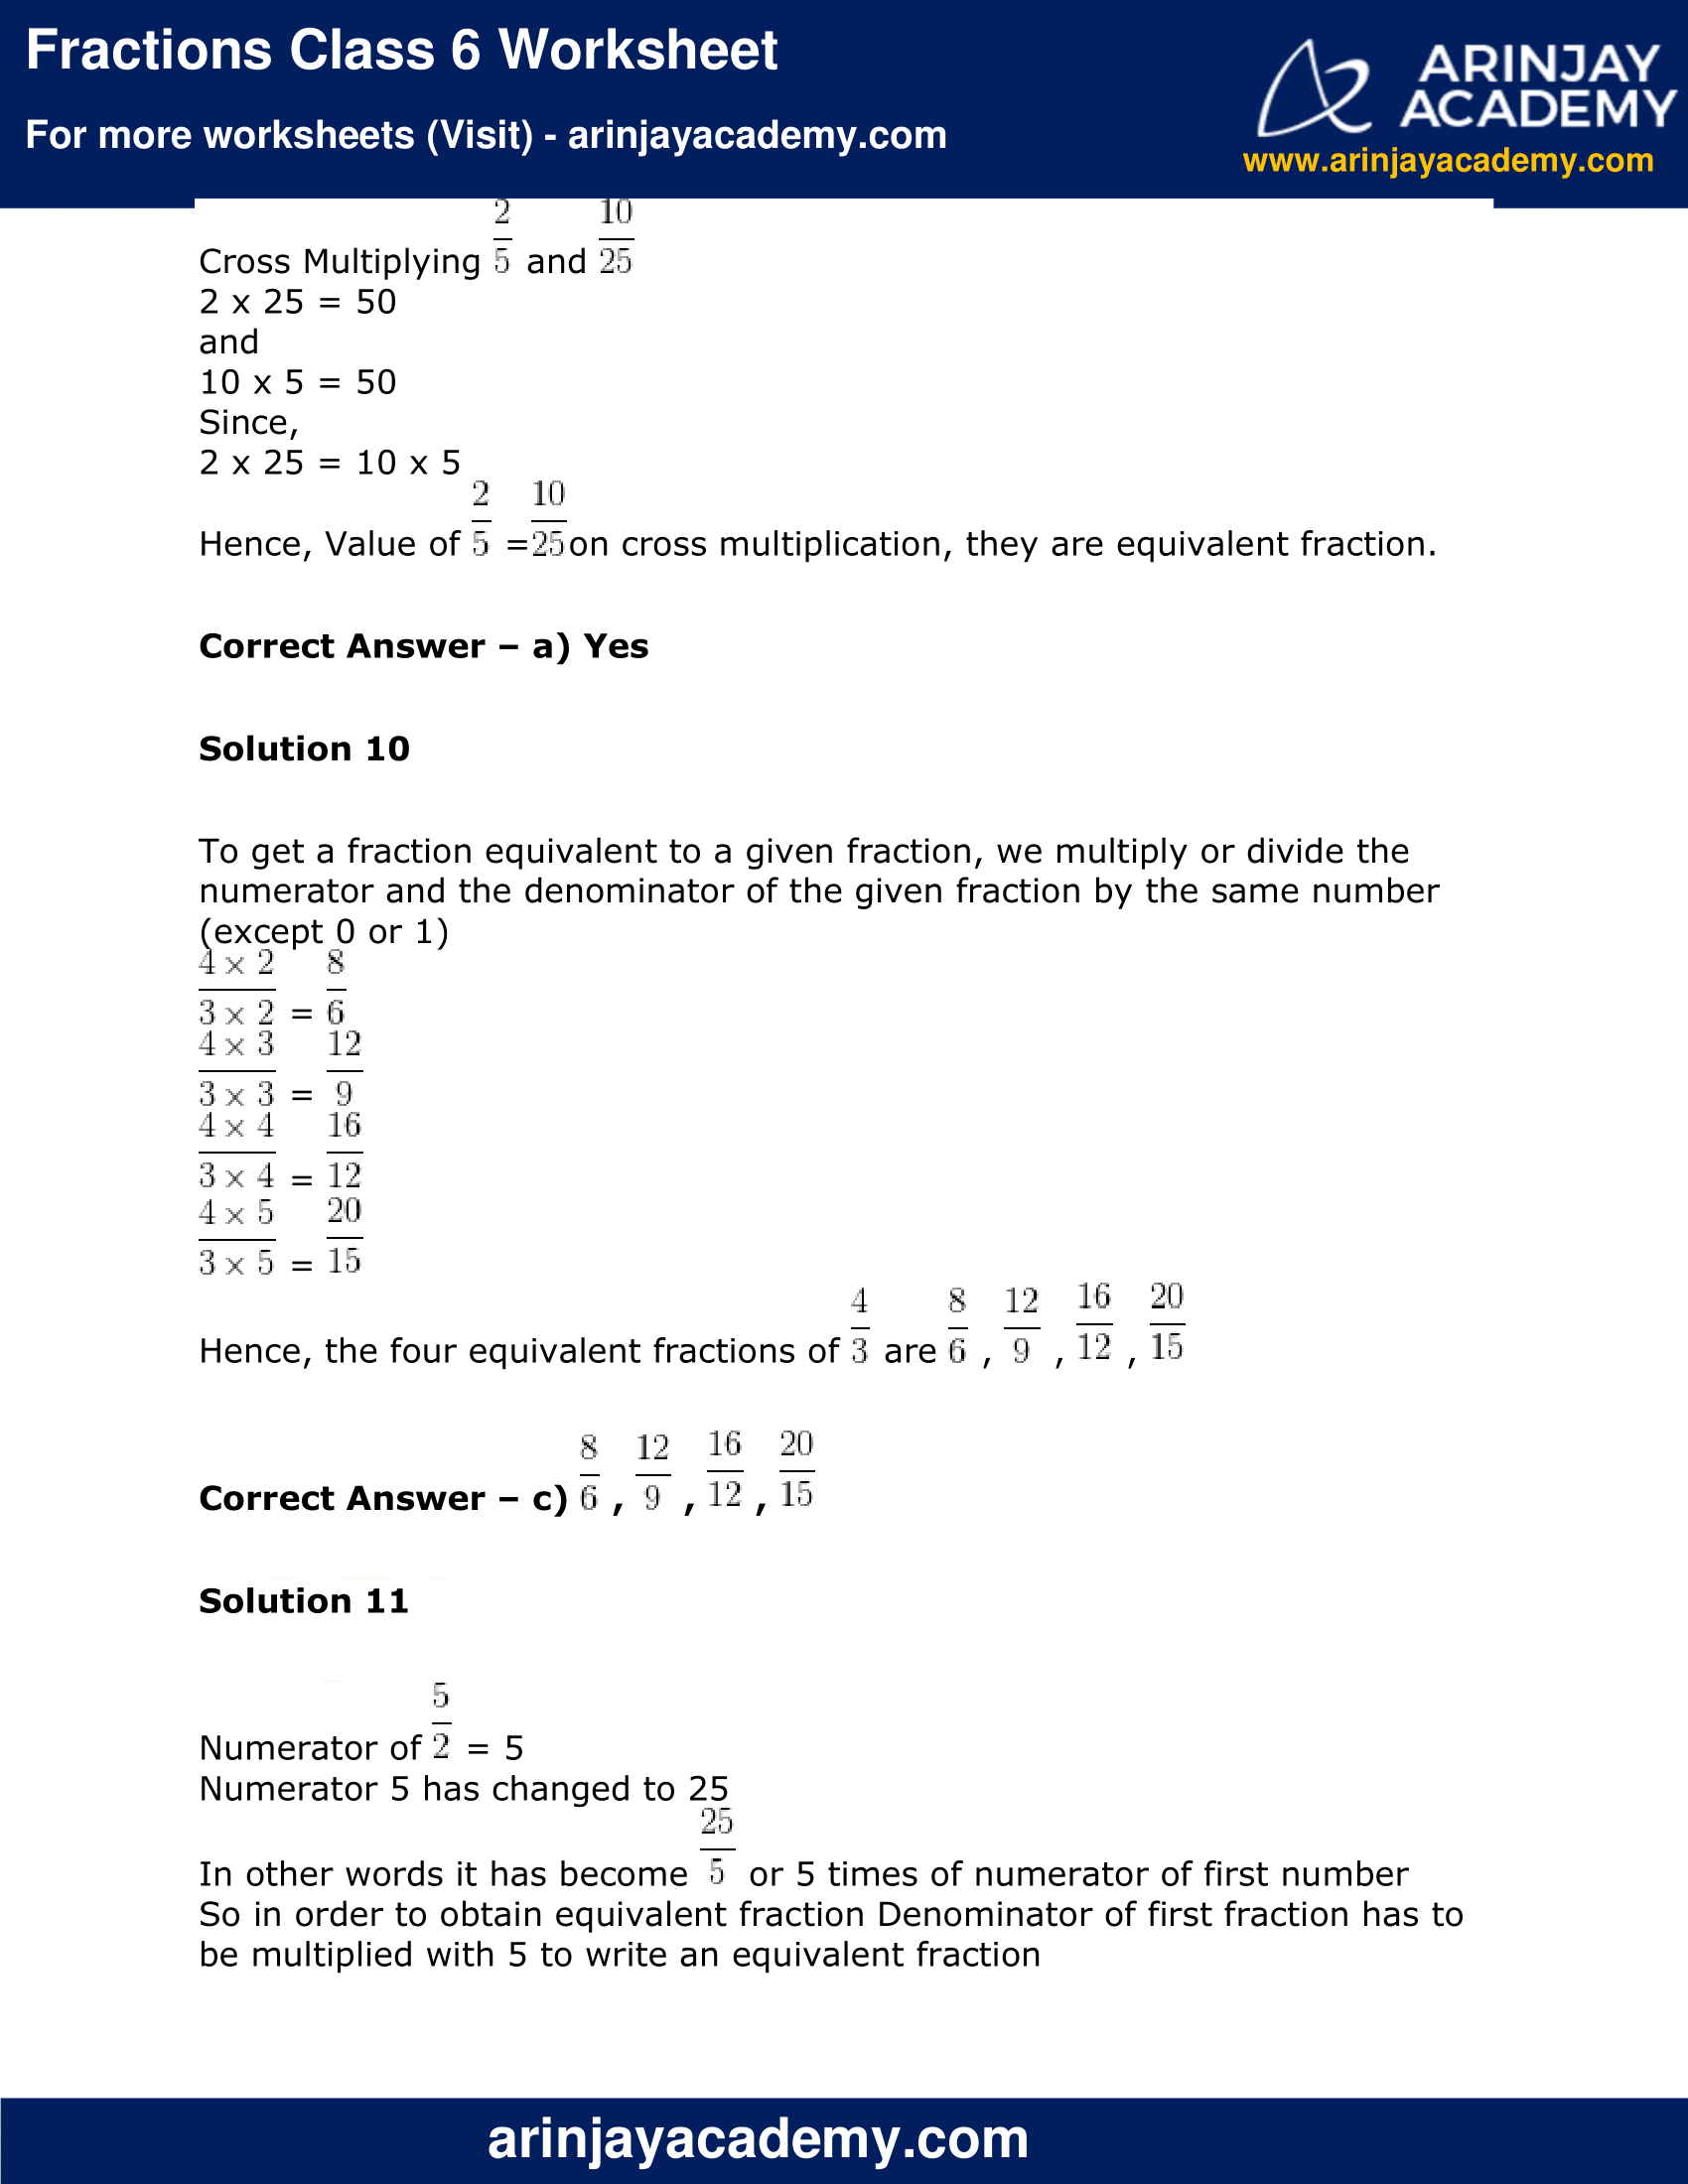 Fractions Class 6 Worksheet image 9